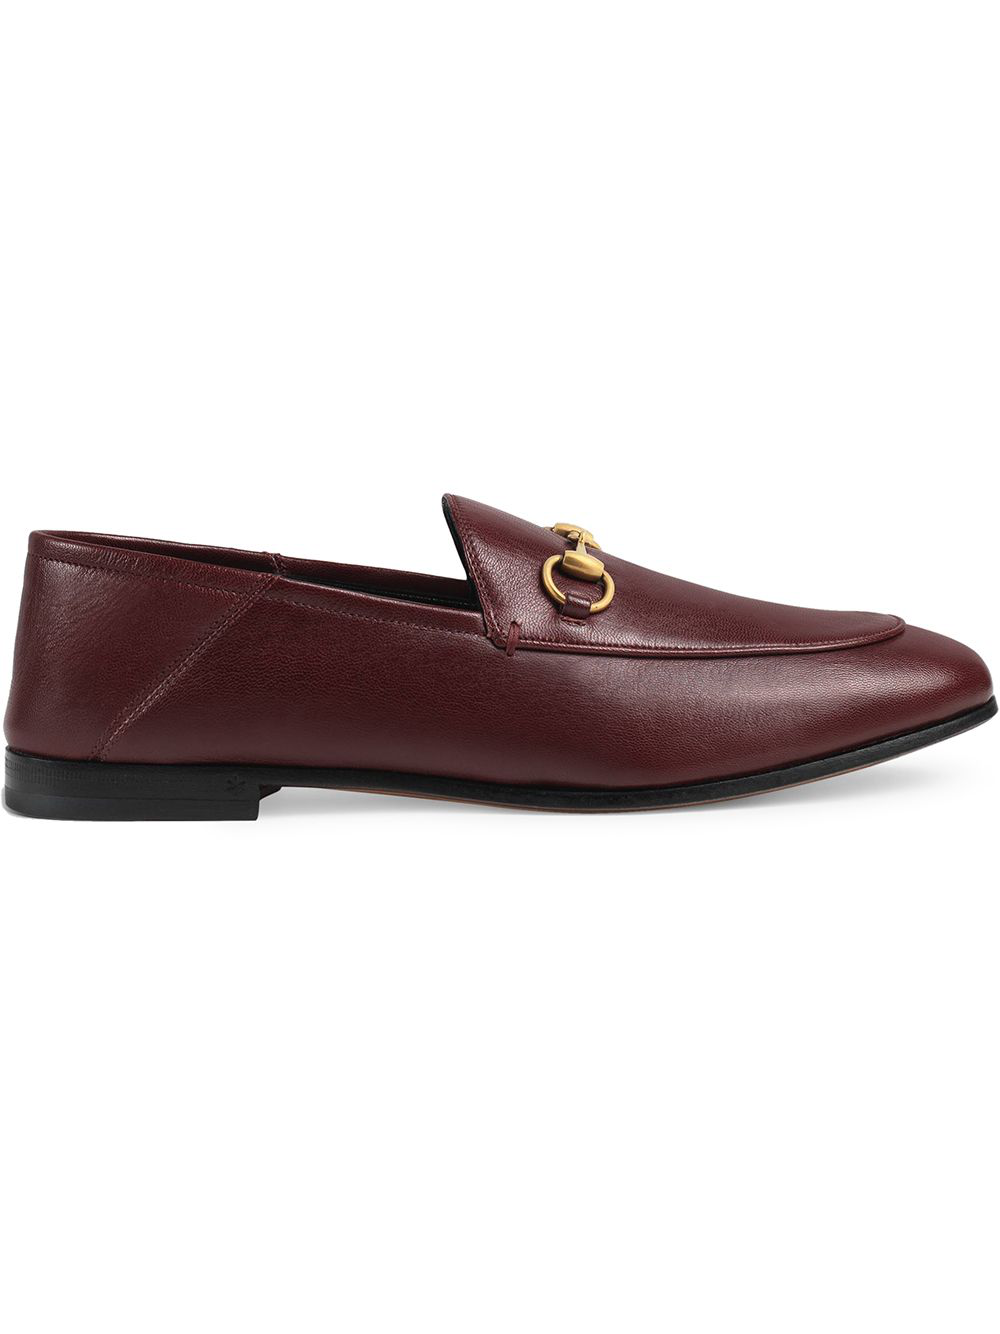 c69e0c74a53 Gucci Brixton Horsebit-Detailed Leather Collapsible-Heel Loafers In Burgundy